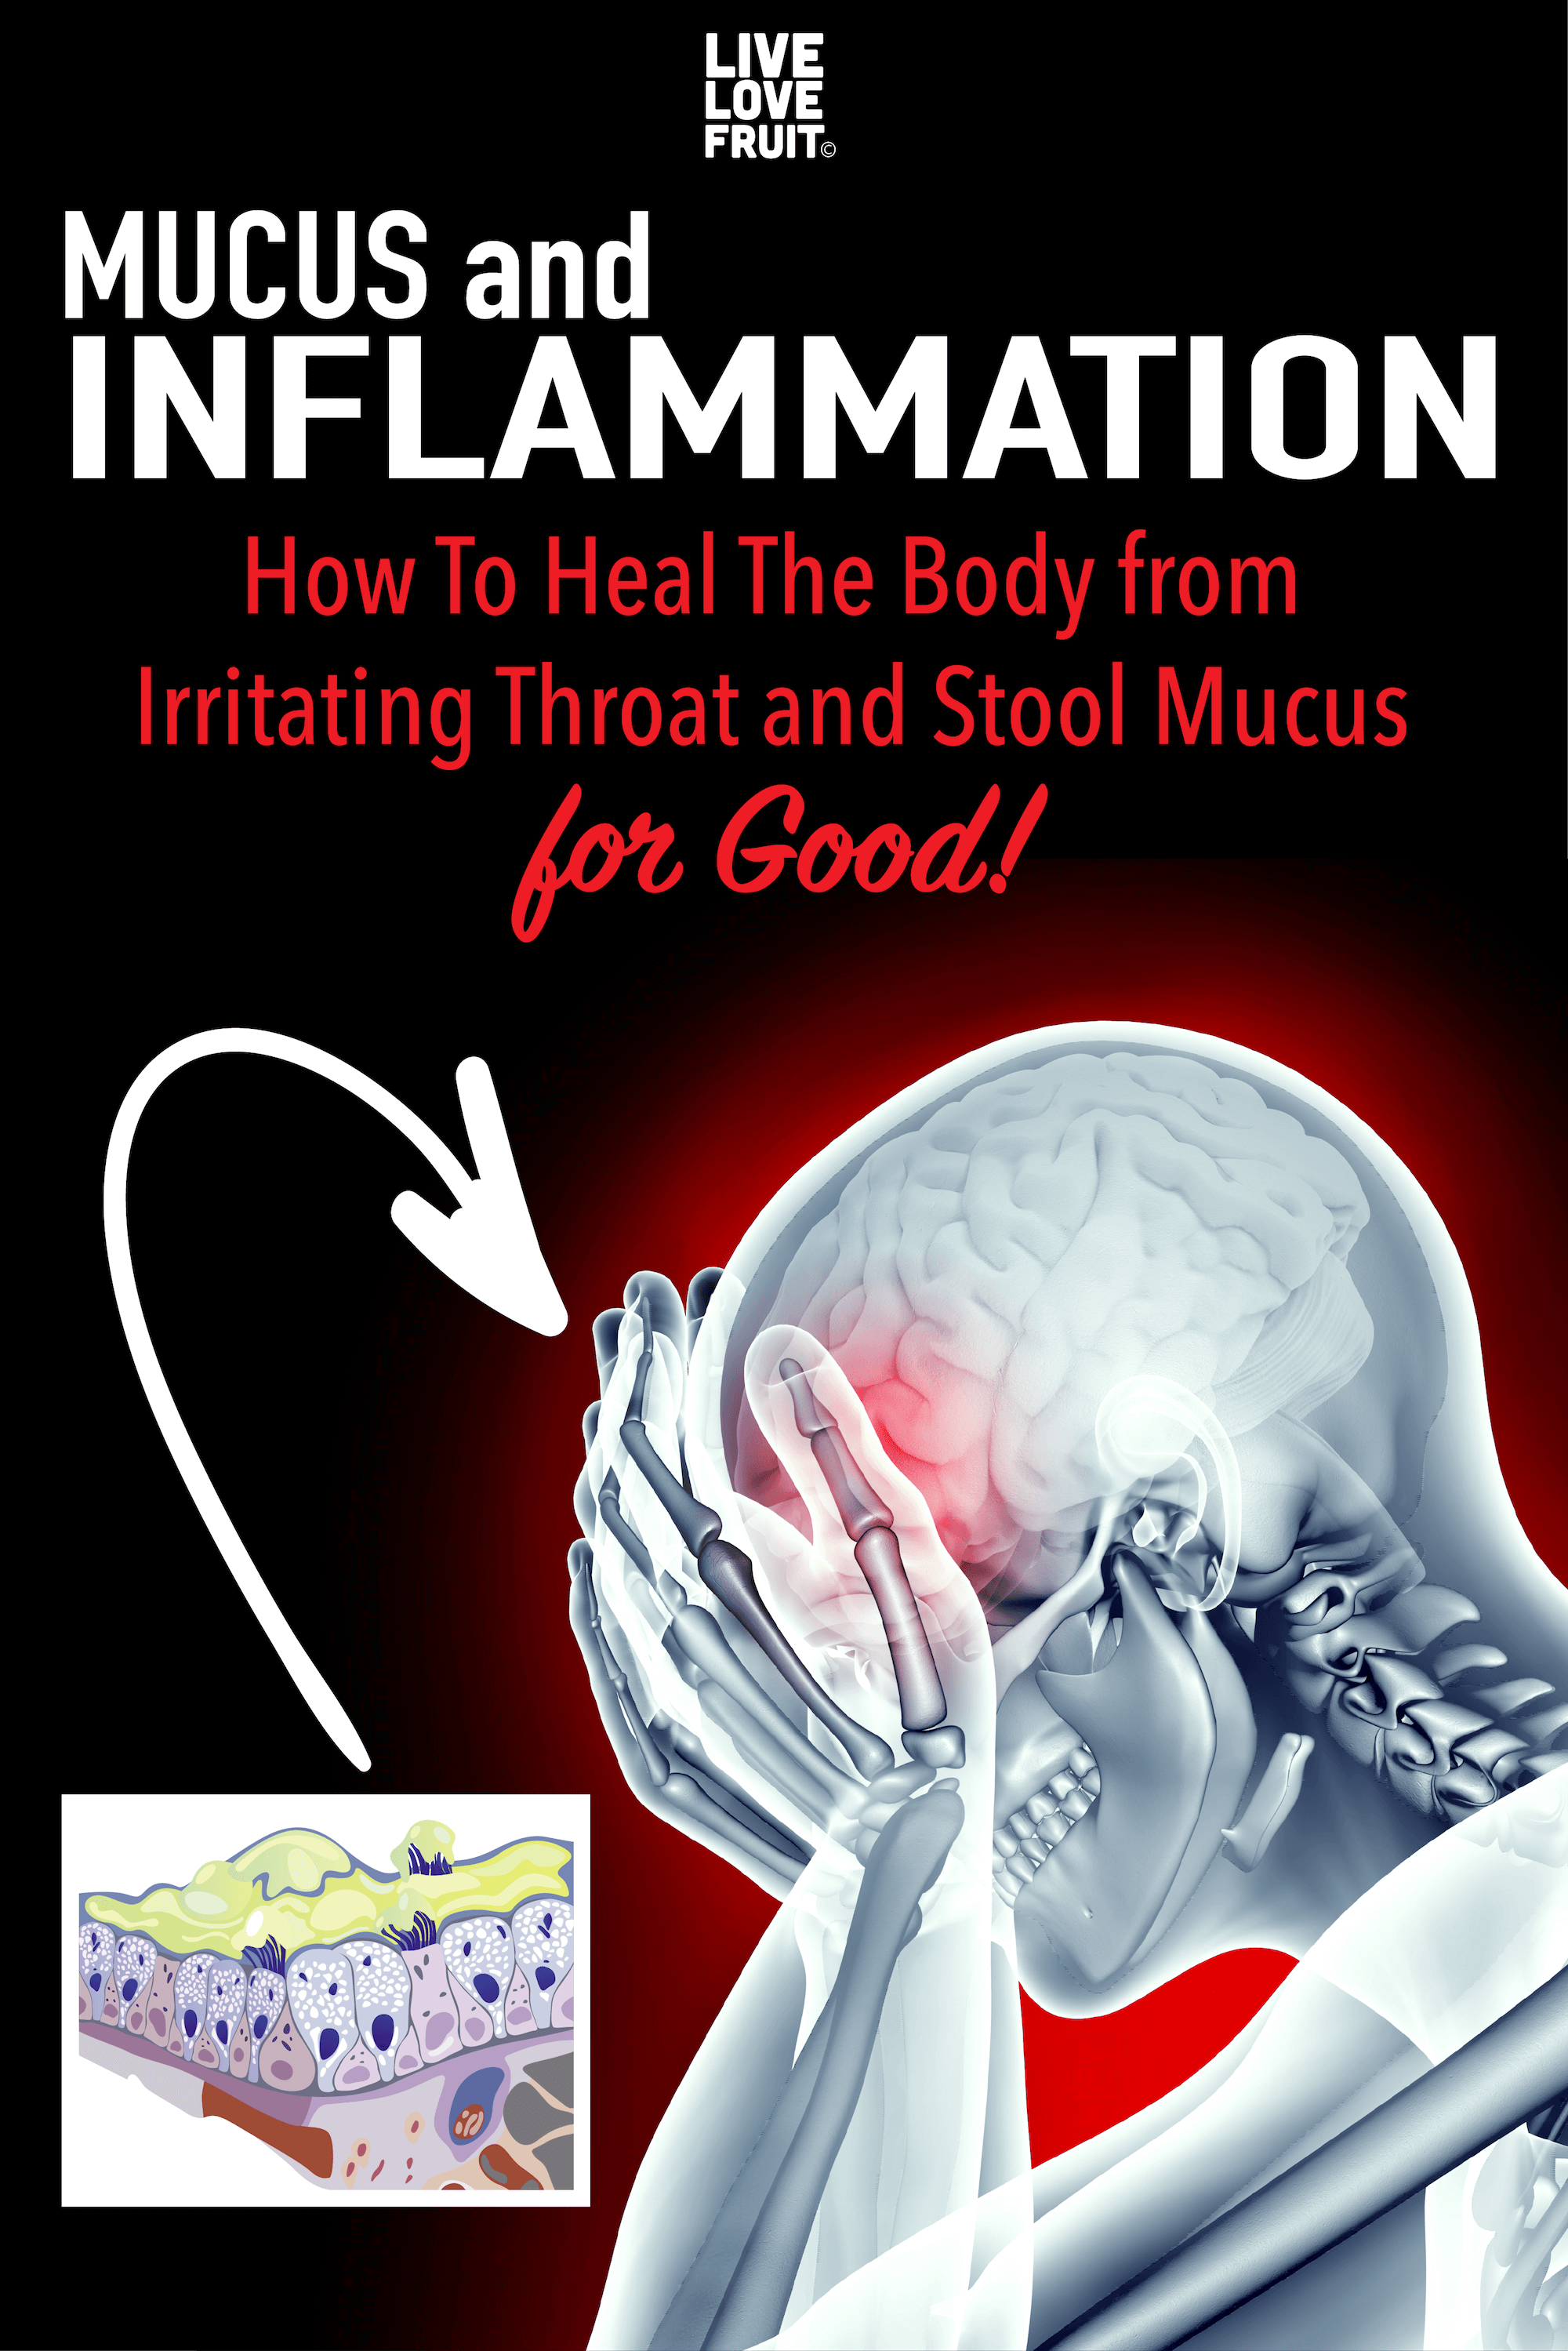 Mucus and inflammation go hand in hand. You can't have one without the other. Here's how to reduce chronic inflammation to eliminate mucus for good.